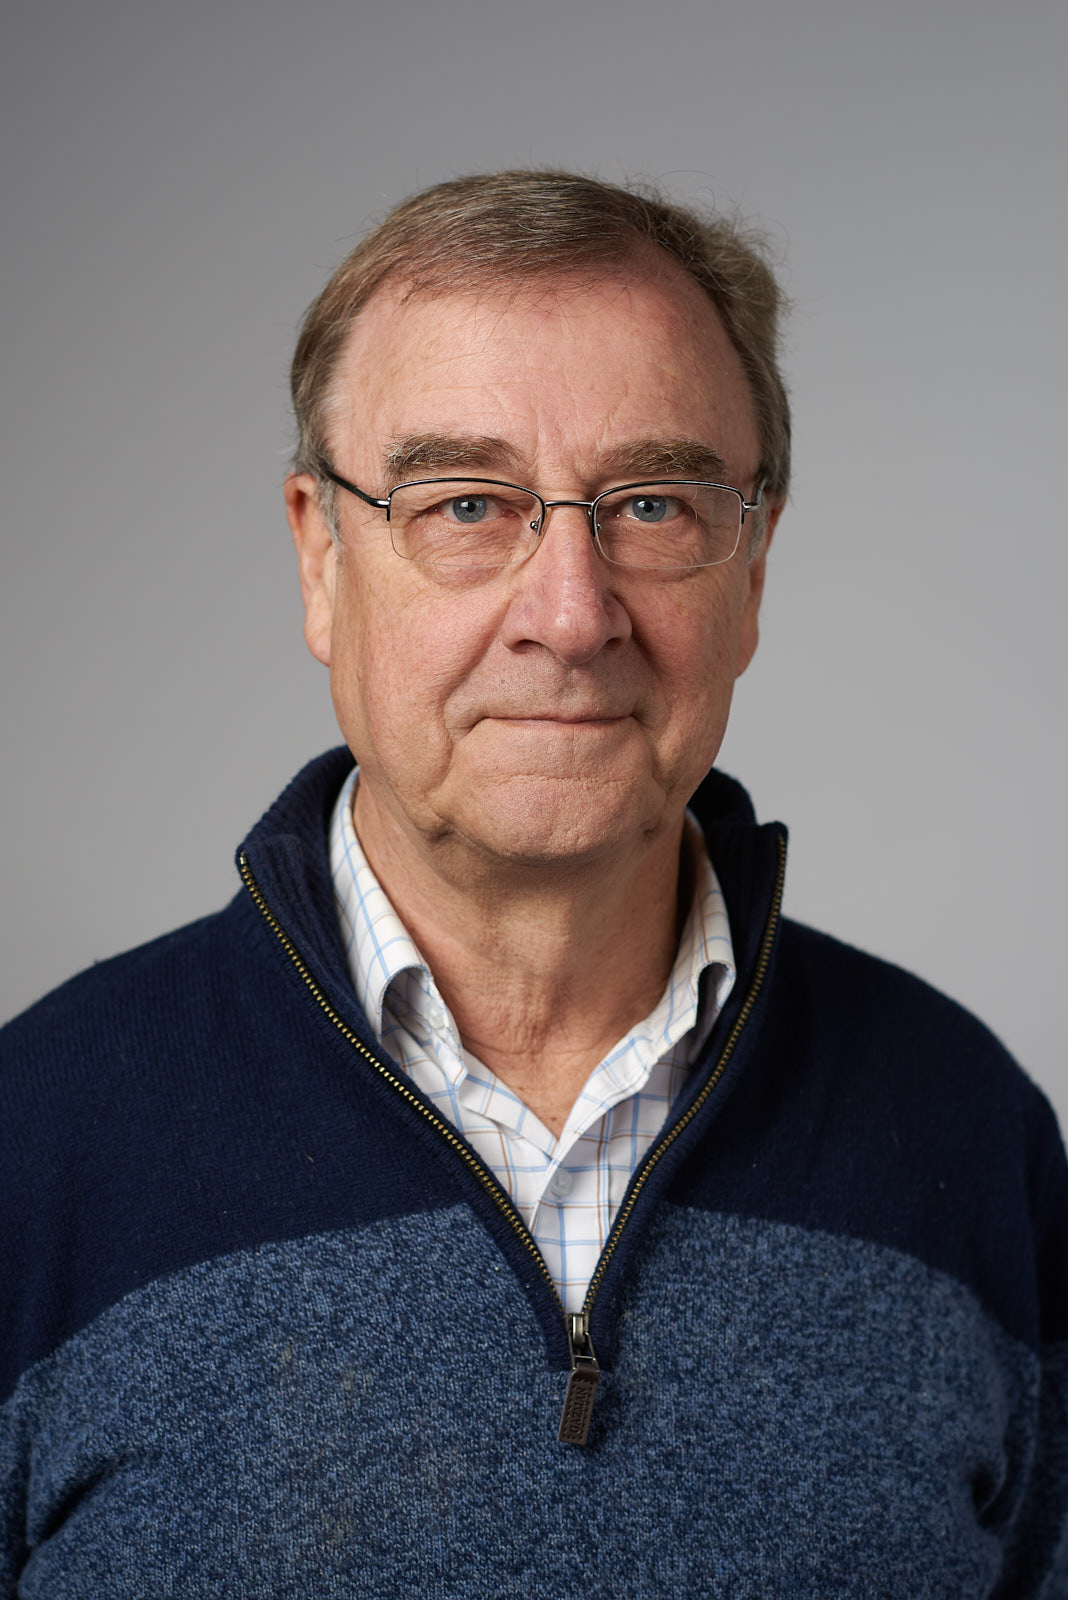 David: Semi-retired Mineral Exploration Geologist, Committee Member Warburton Valley Community Economic Development Association (CEDA), U3A Tutor, Chief Geologist - AngloGold Australia, Chief Geol- ogist - Acacia Resources Ltd, Regional Exploration Manager - Eastern Australia - Billiton Australia.